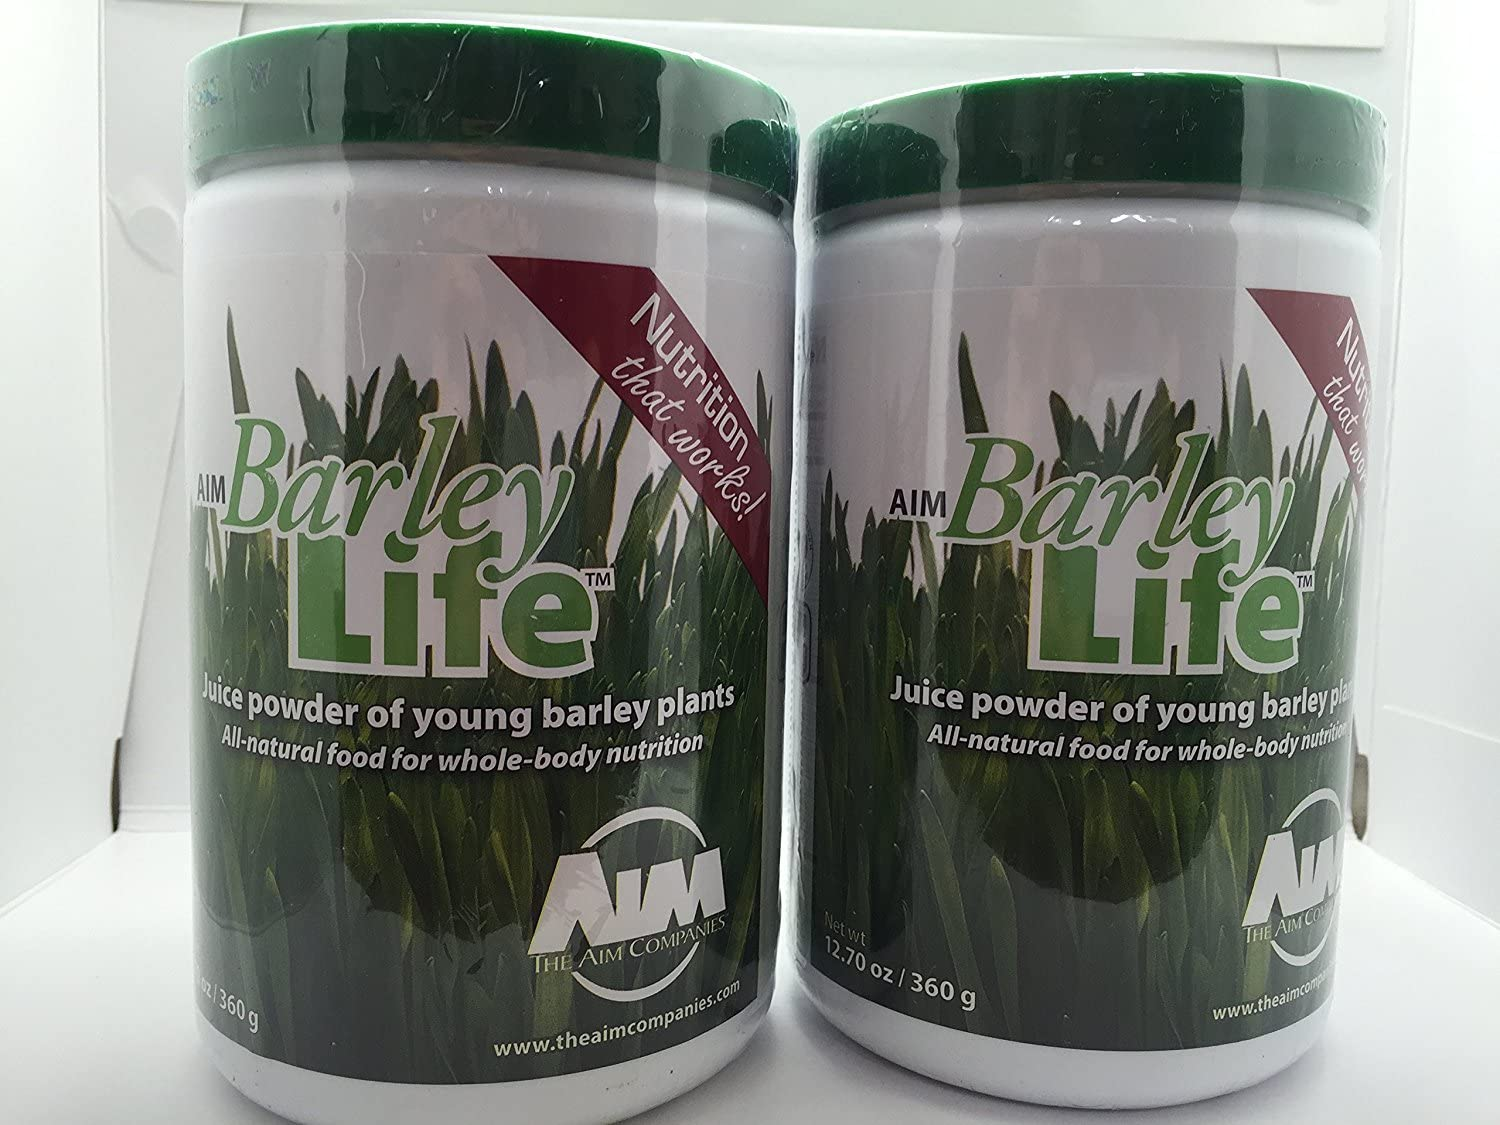 AIM BarleyLife – Family Size 12.7 oz Barley Grass Powder 2